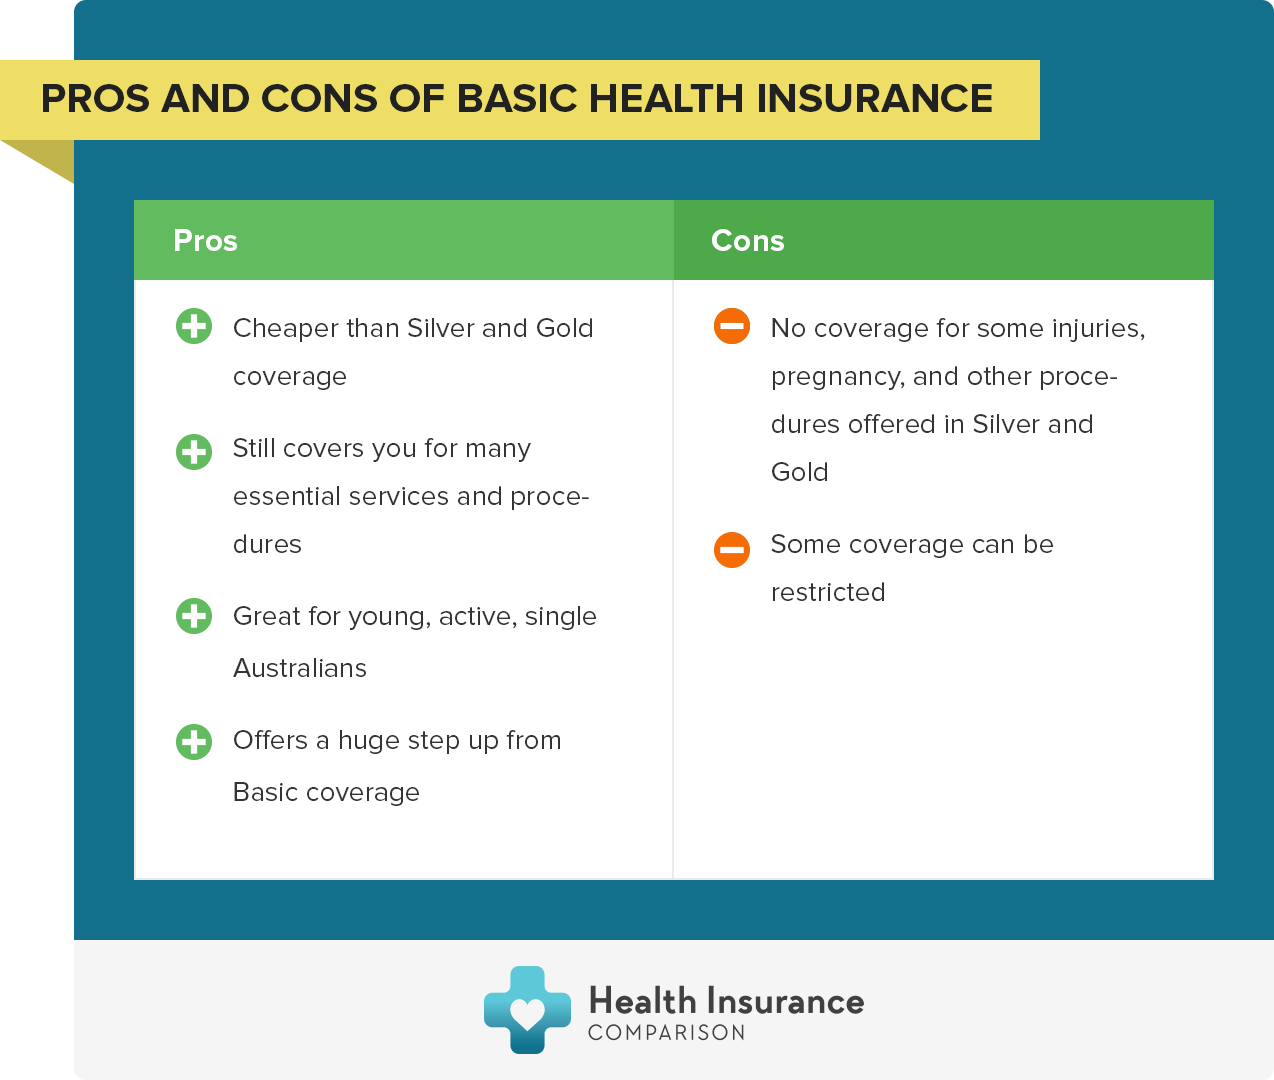 Pros and Cons of Basic Health Insurance